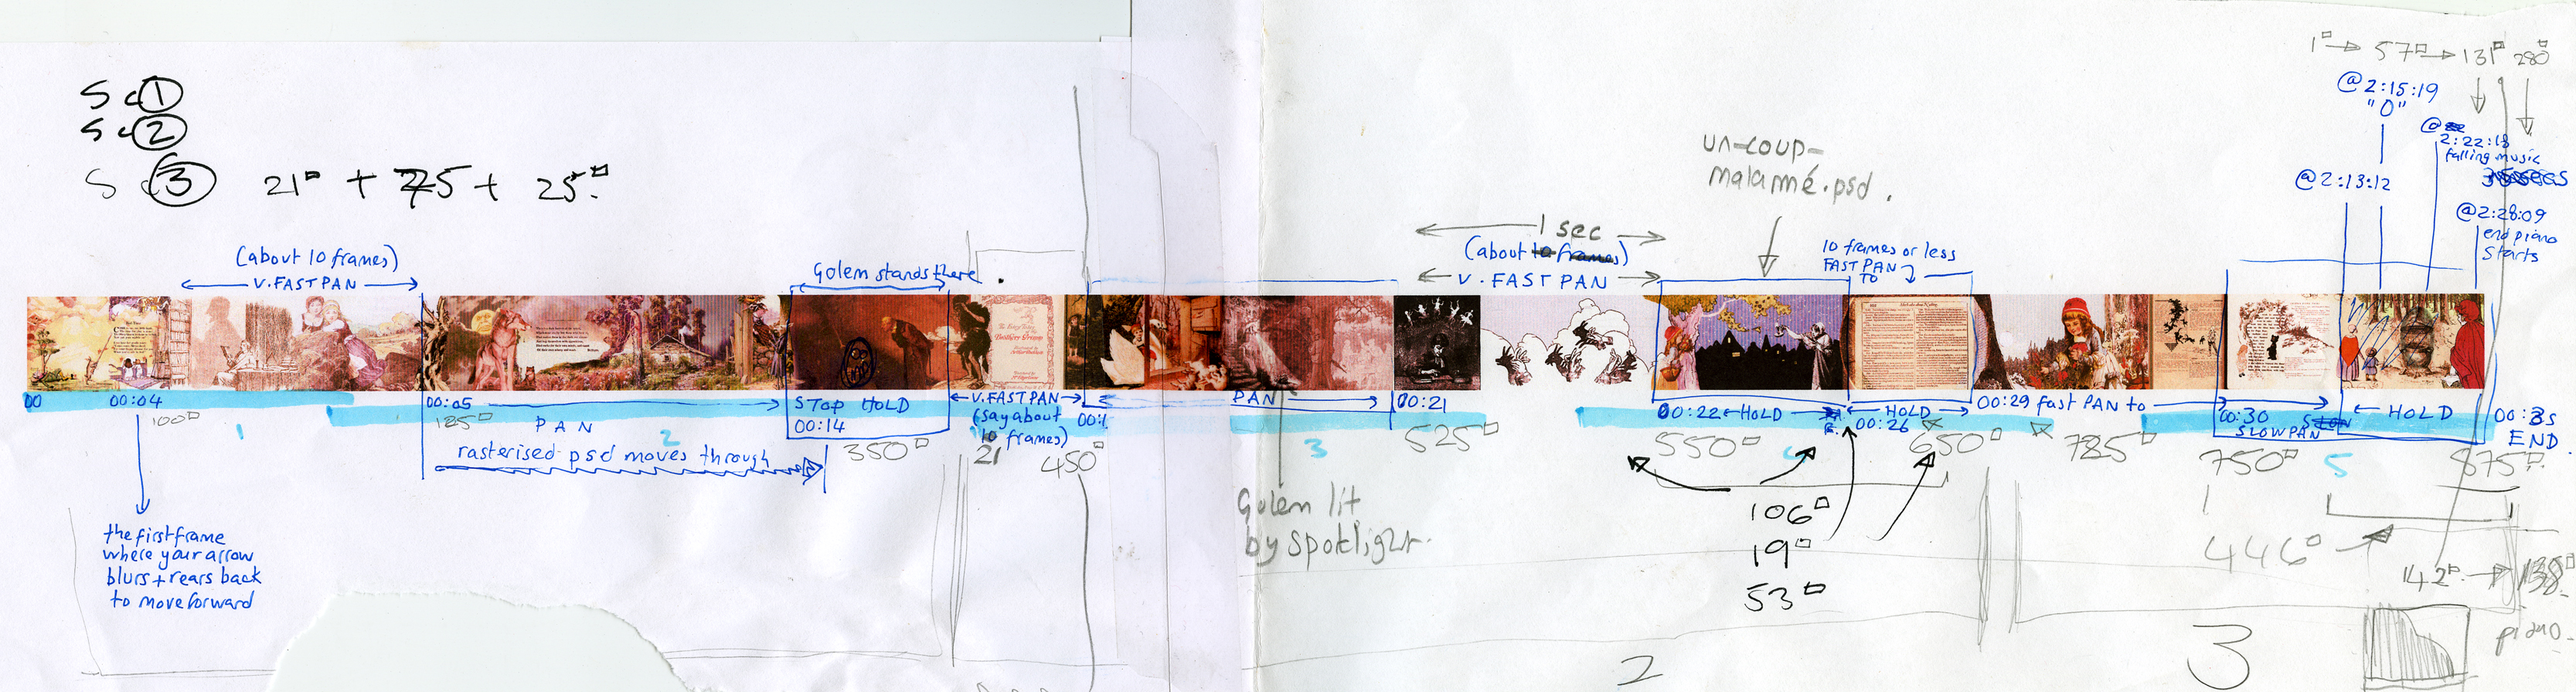 Editing timeline for The Golem